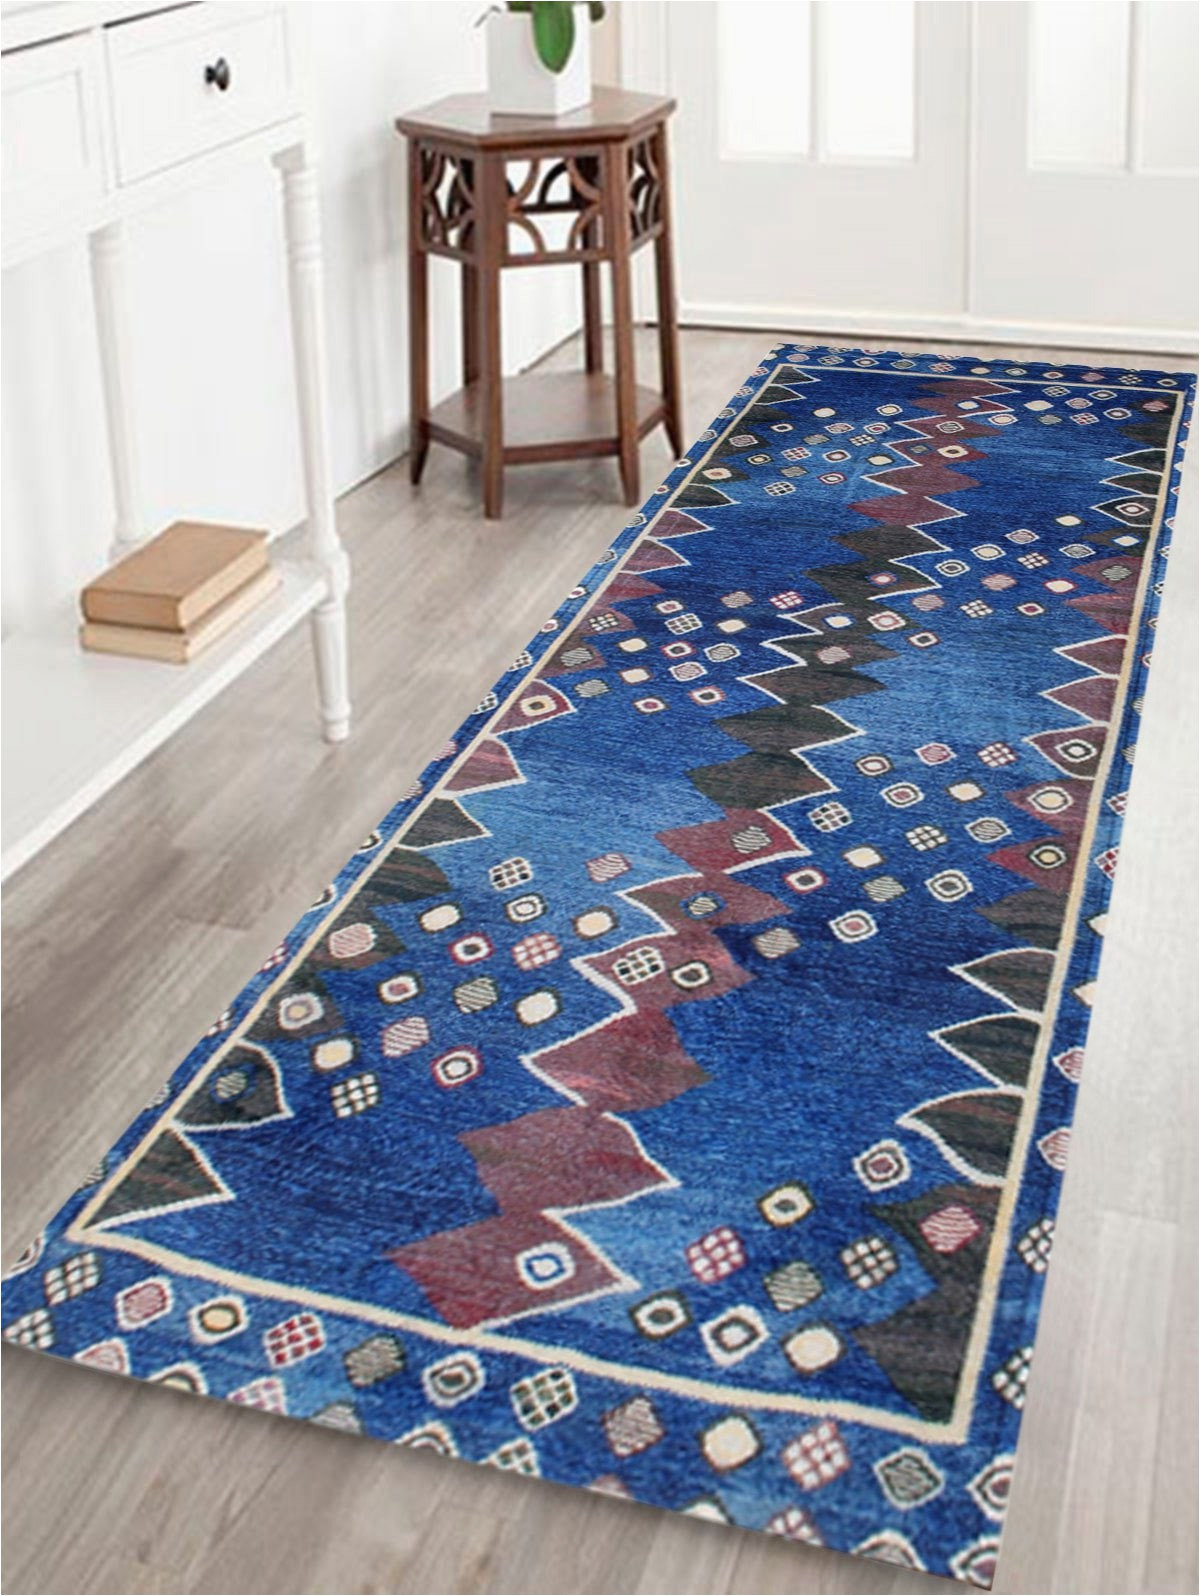 54 Inch Bath Rug Ethnic soft Velvet Bathroom Rug